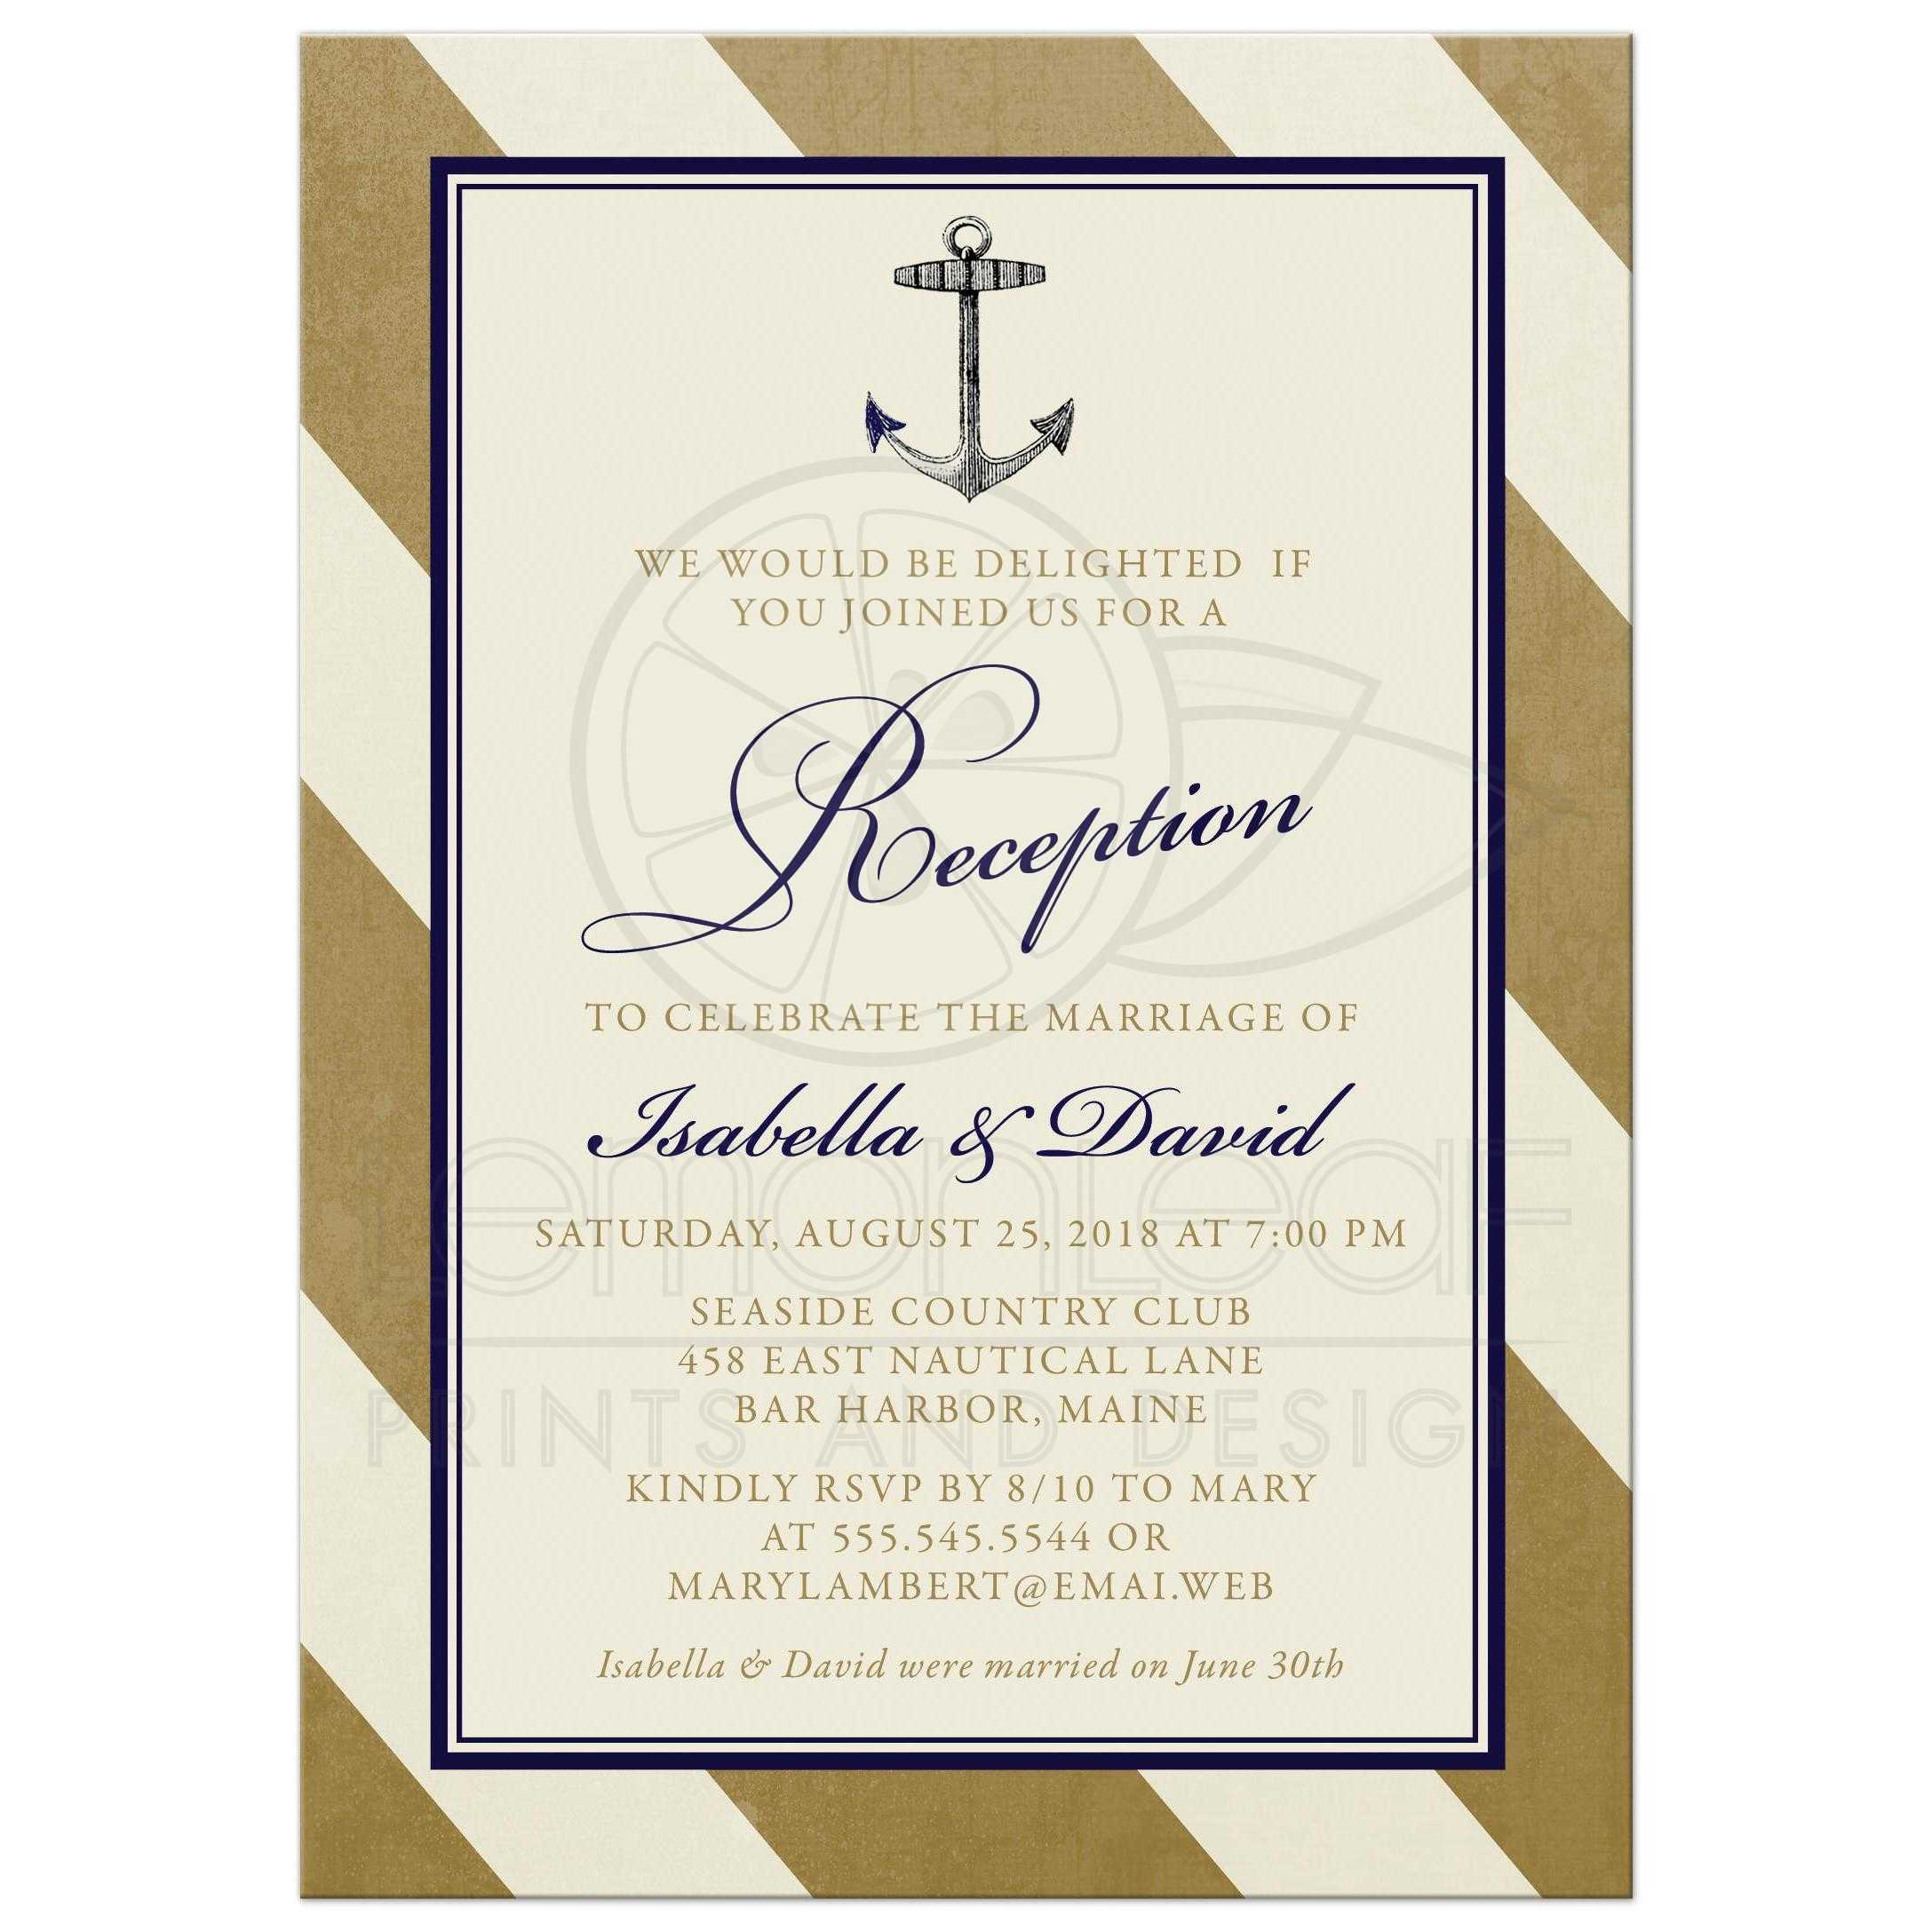 Elegant Nautical Post Wedding Reception Only Invitations ...